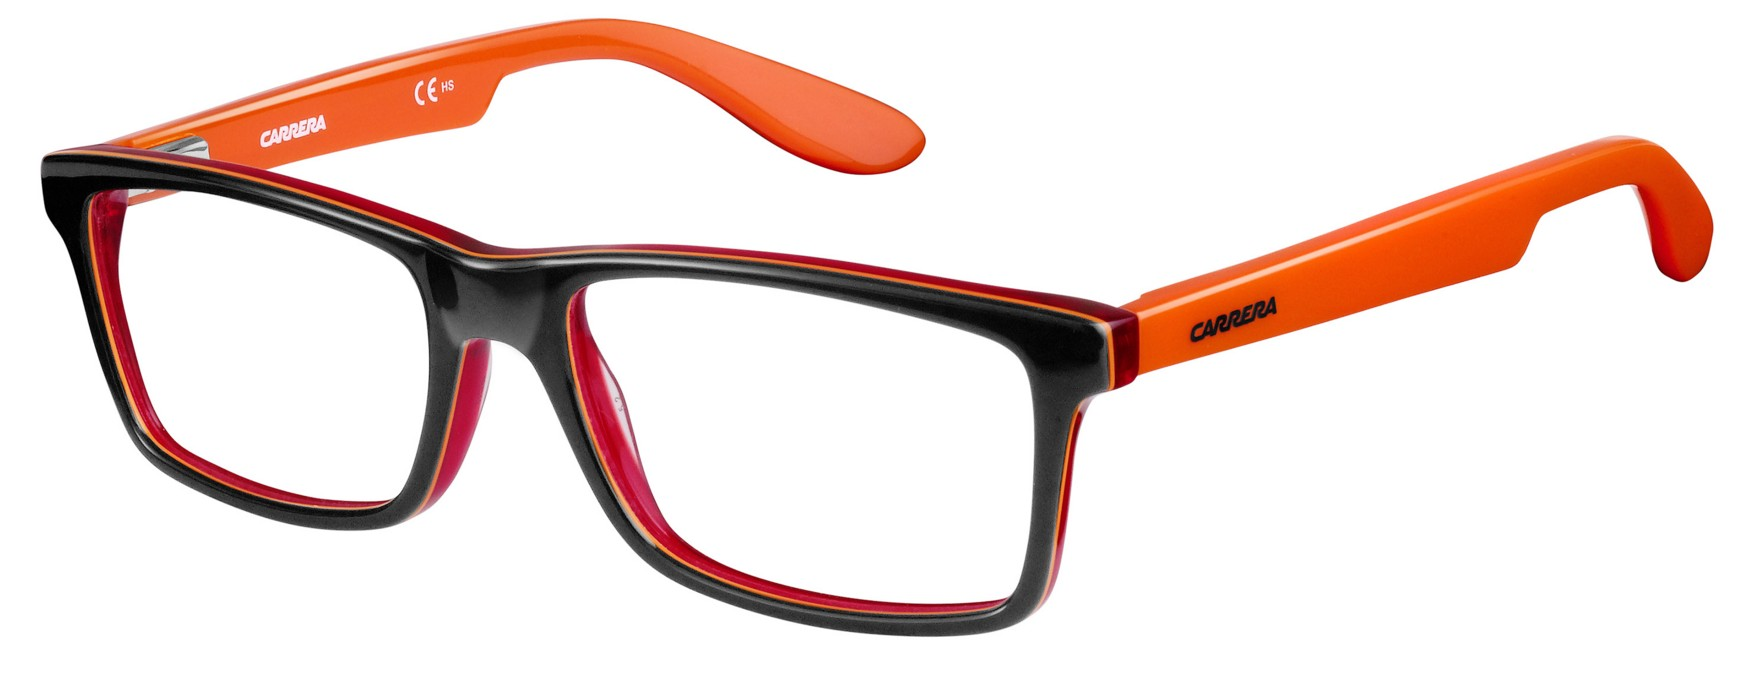 CARRERA - Carrerino 54 (Carrerino 54, Rahmen: Black Orange, Glas: -)